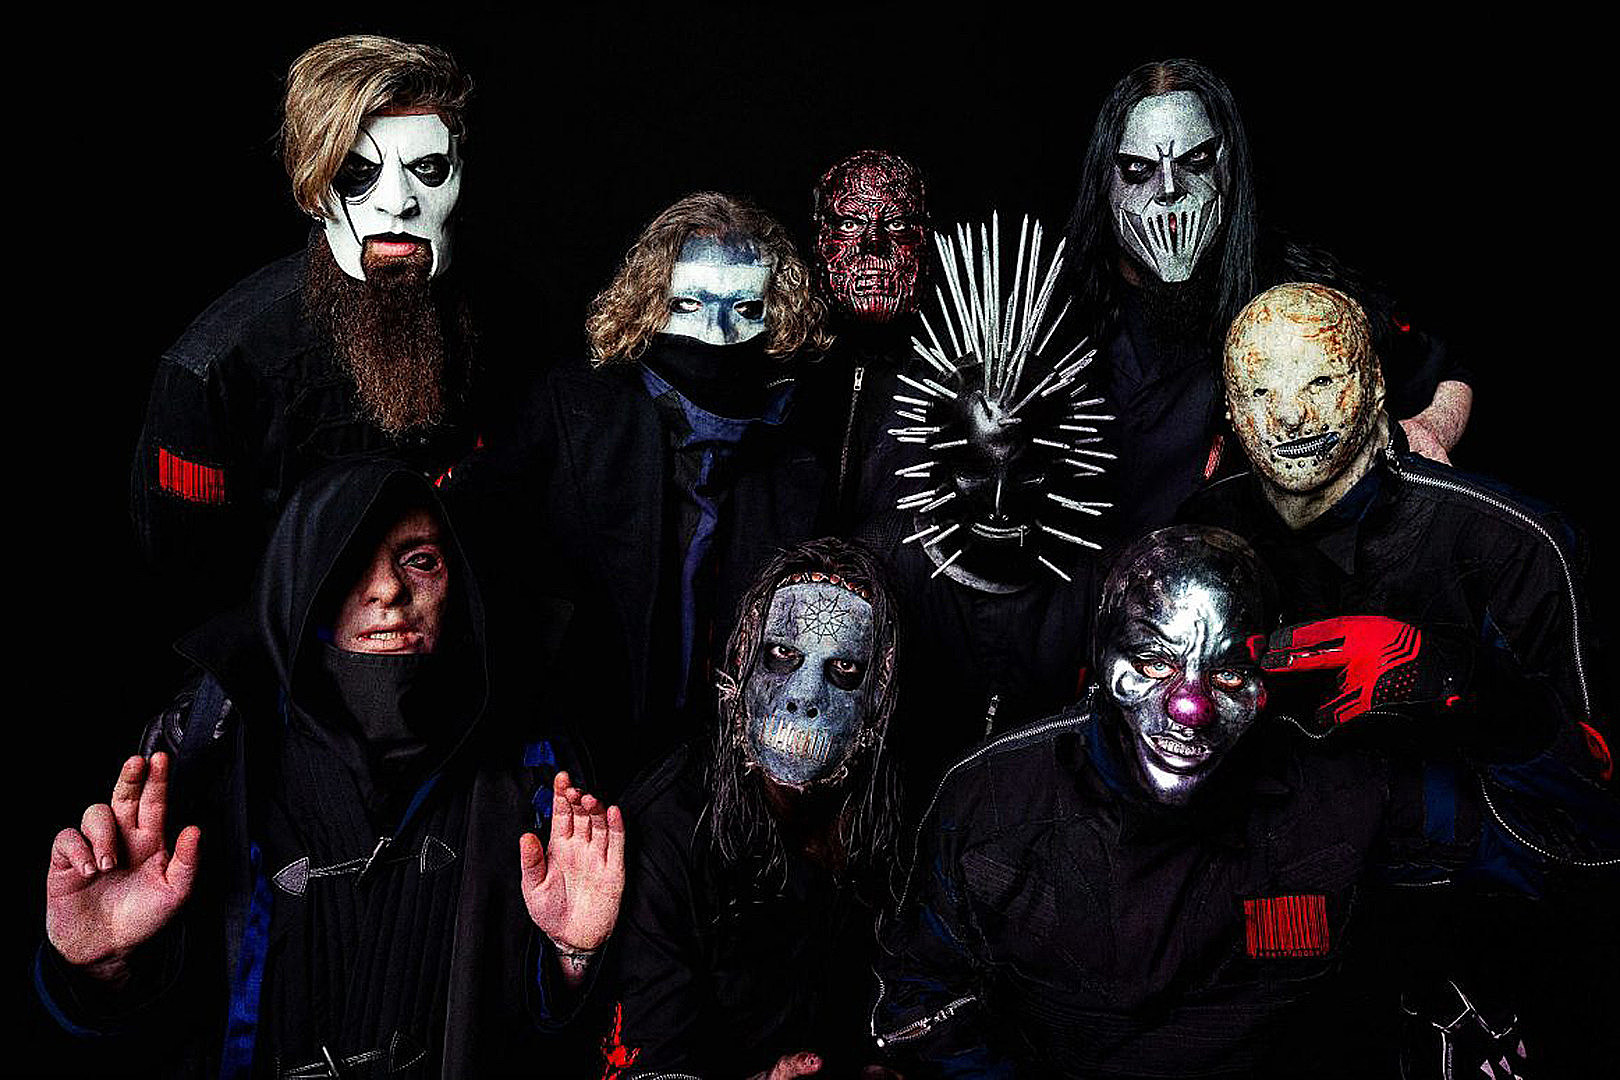 Slipknot's 'We Are Not Your Kind' Receives First Global Chart Certification